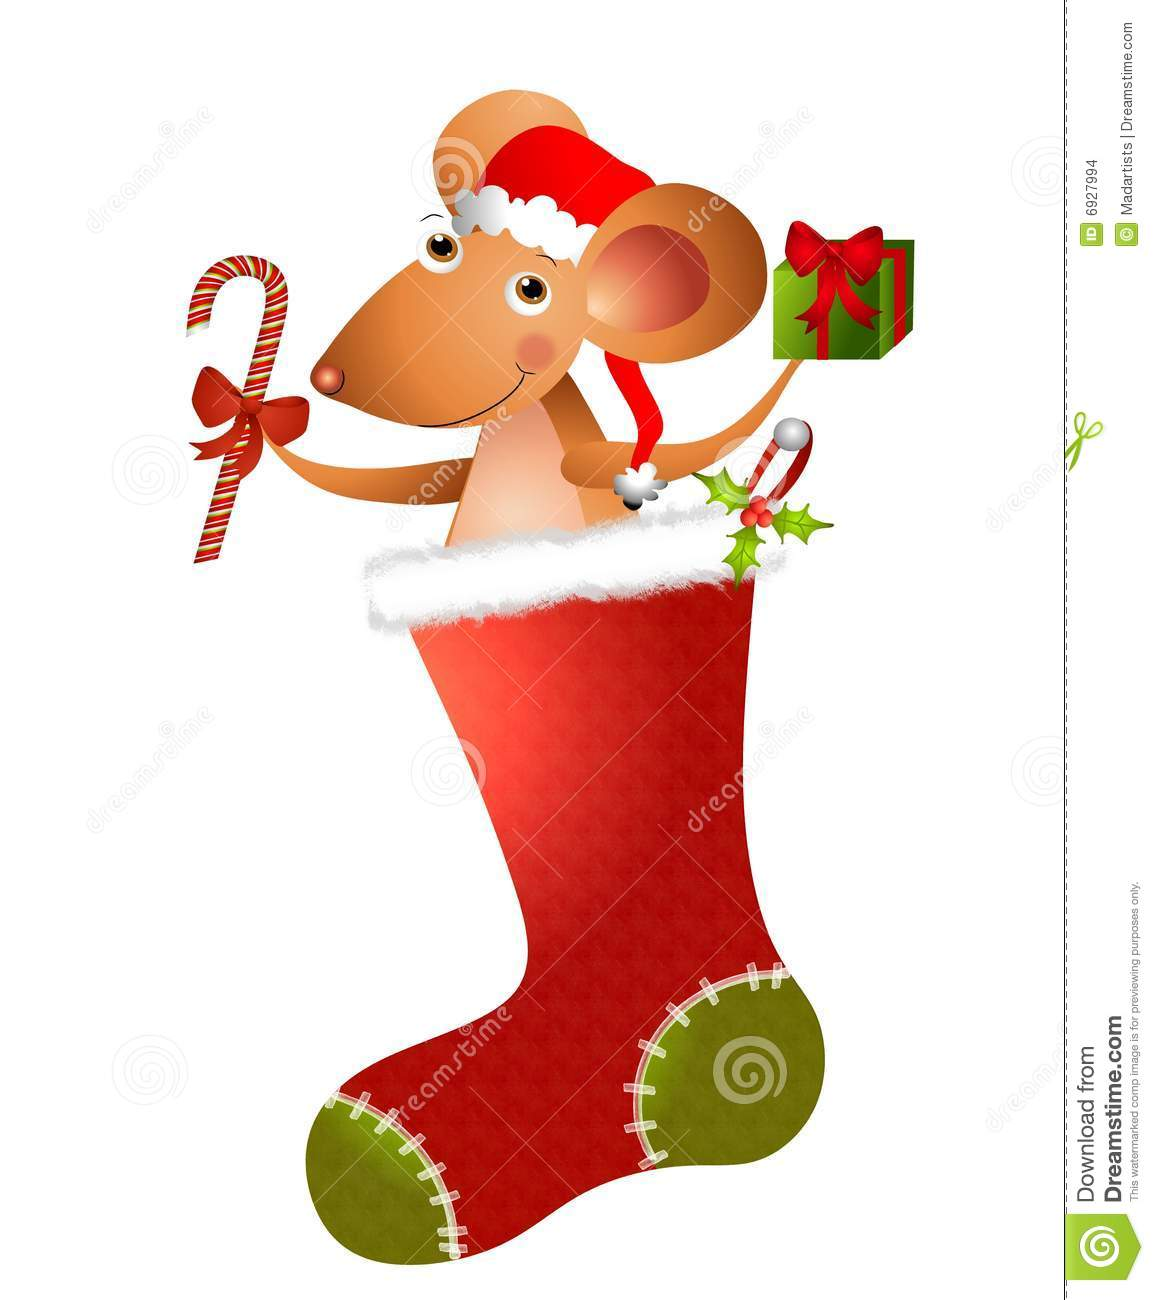 christmas mouse clipart - photo #24